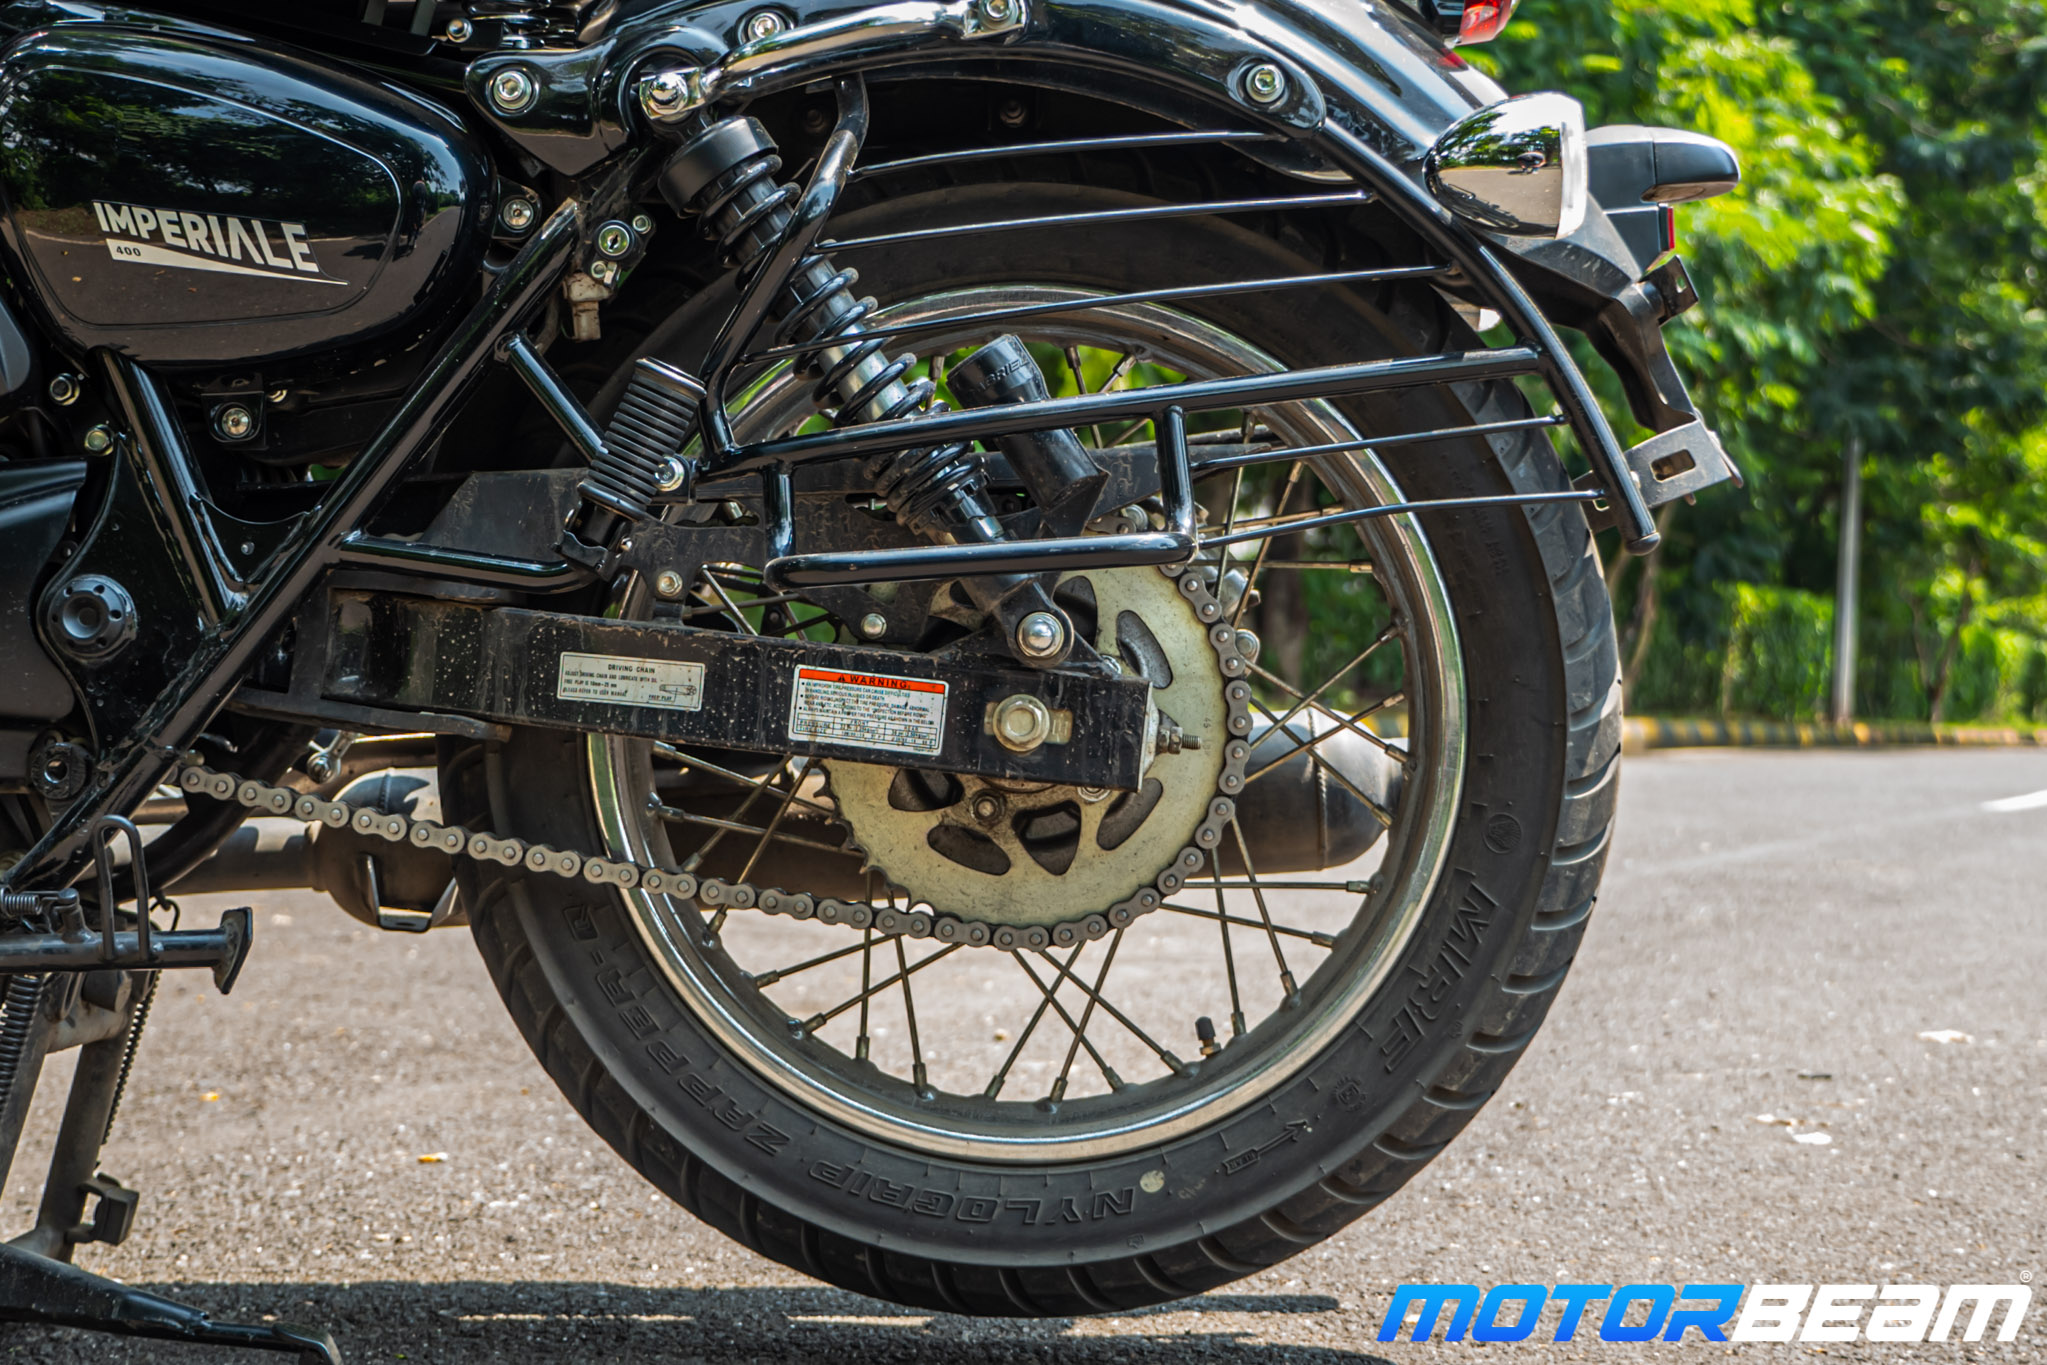 2020 Benelli Imperiale 400 Review 34